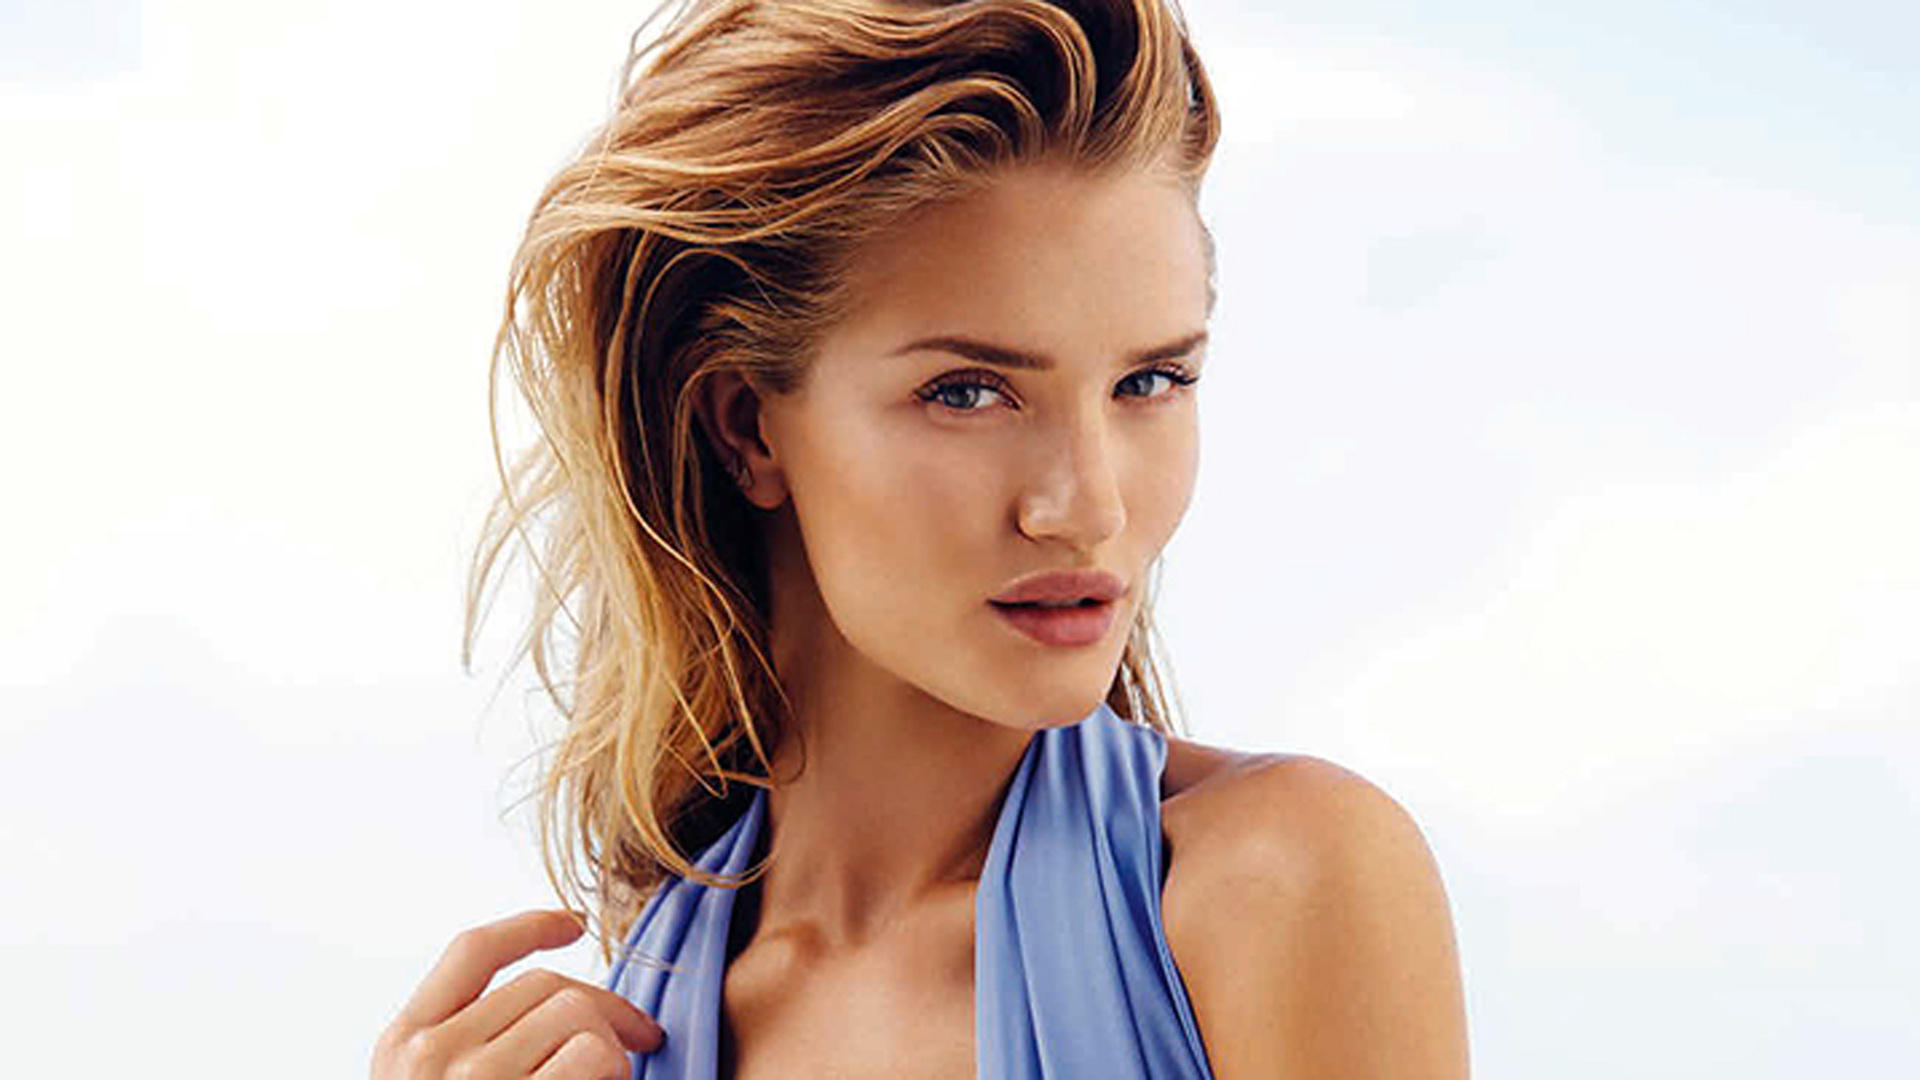 Rosie Huntington-Whiteley Wallpapers Images Photos ... Rosie Huntington Whiteley